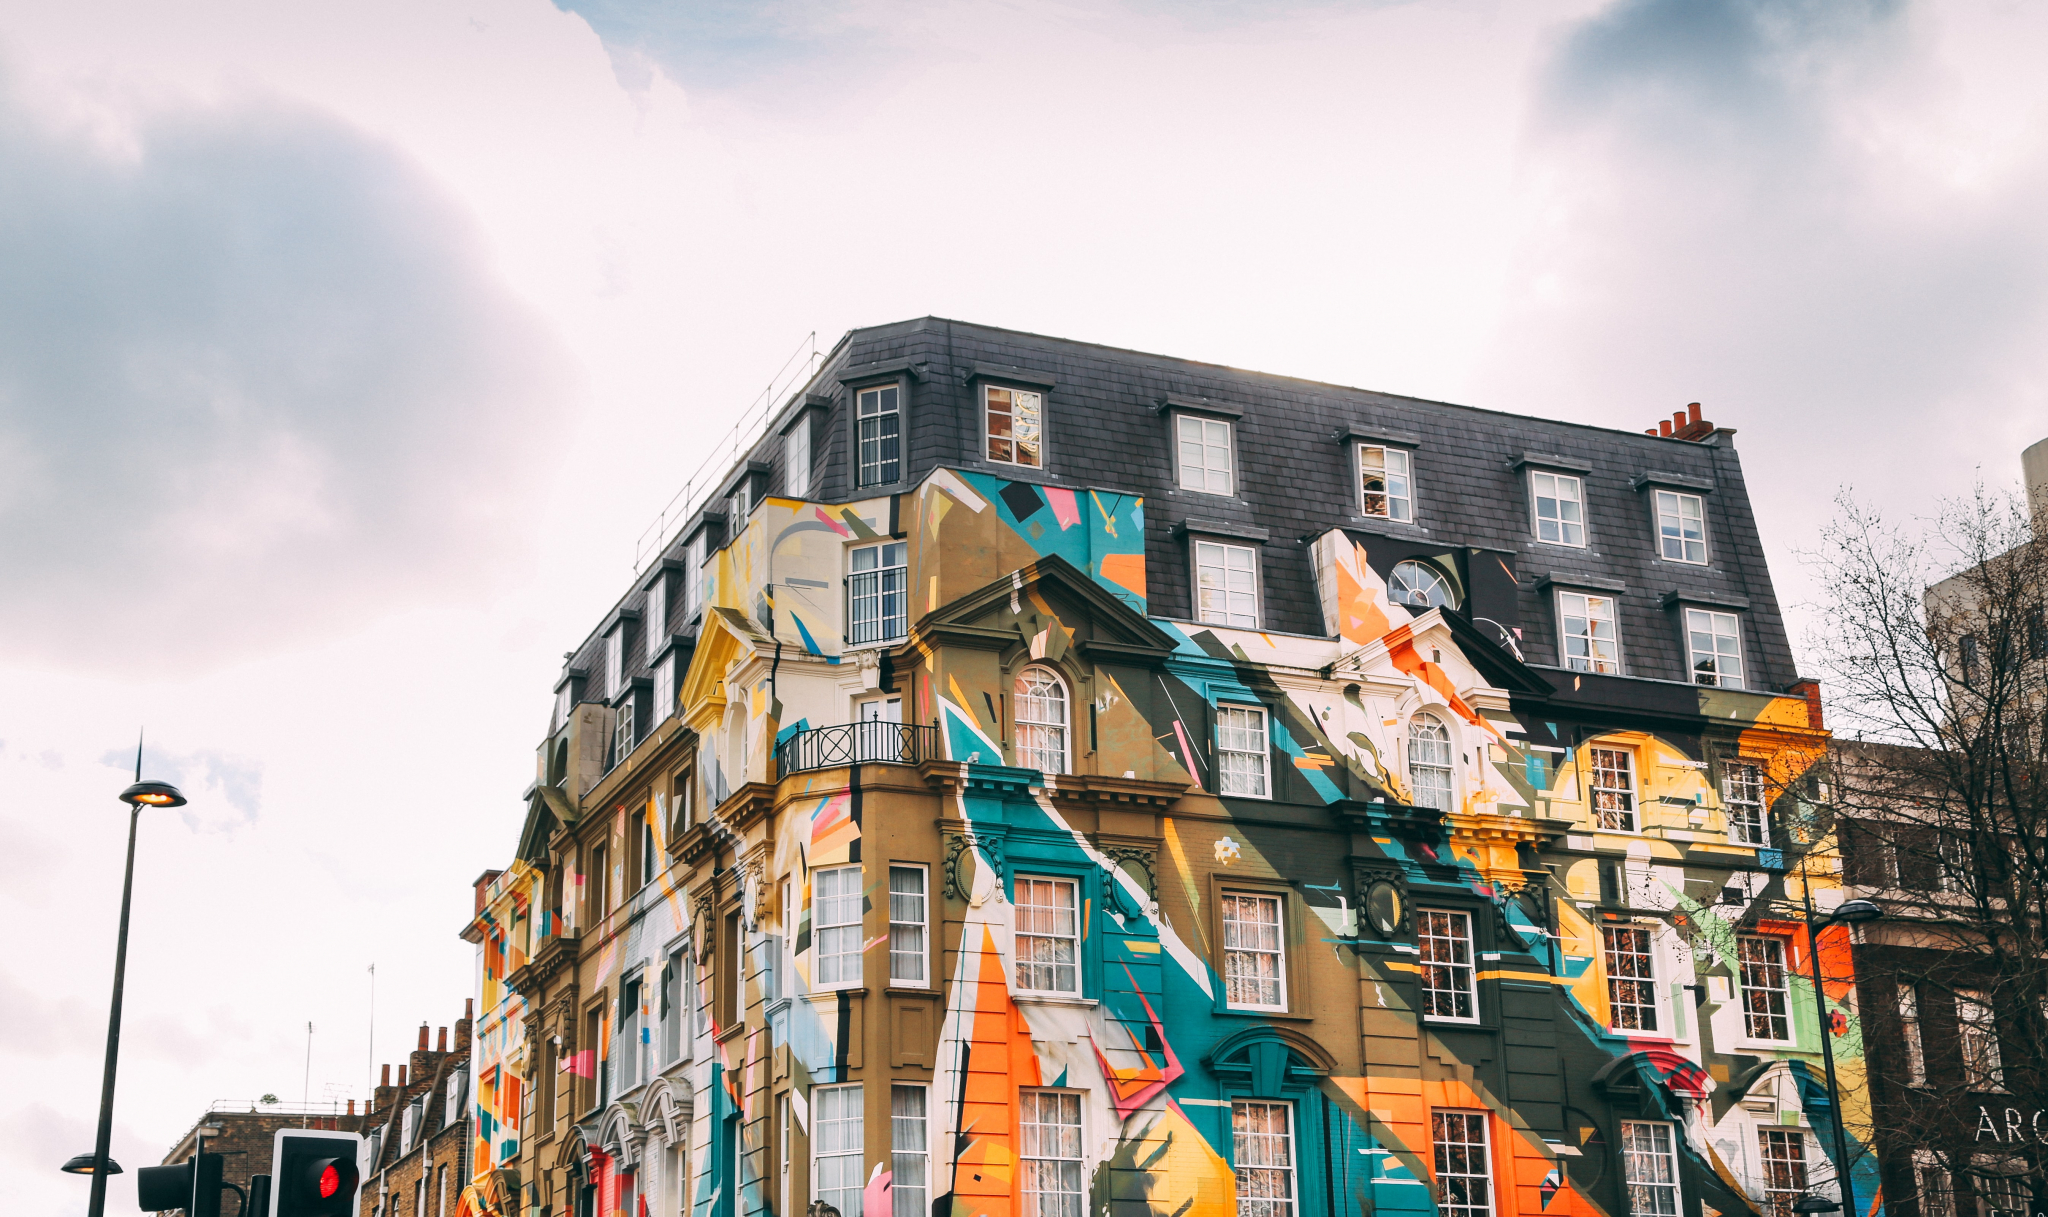 Building with art work painted on